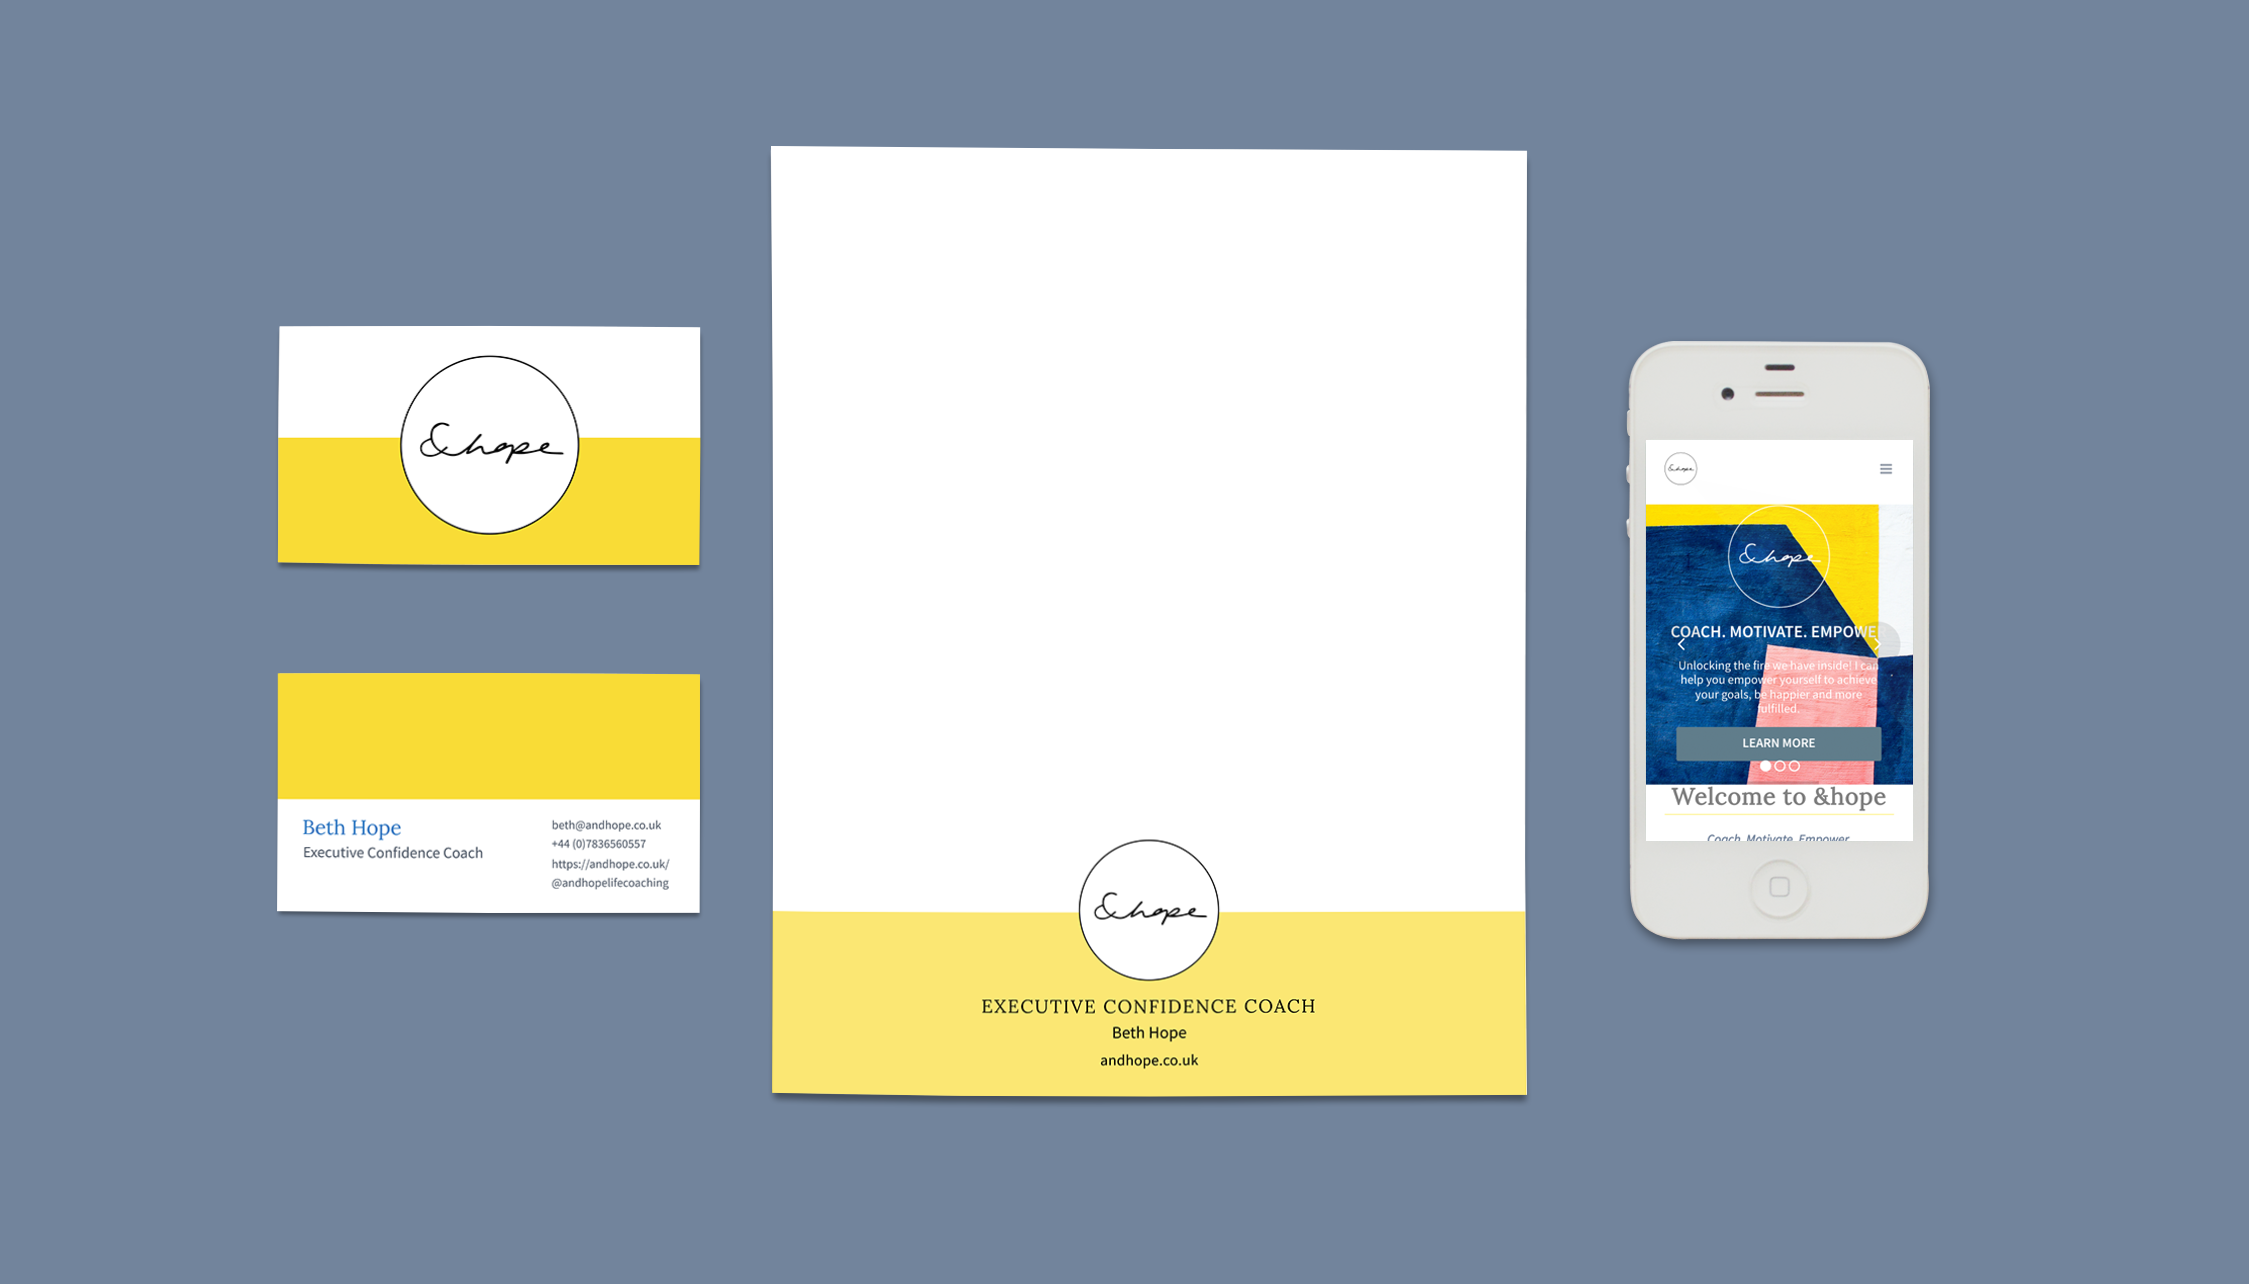 &hope-stationary & mobile of branded website- Eva B.